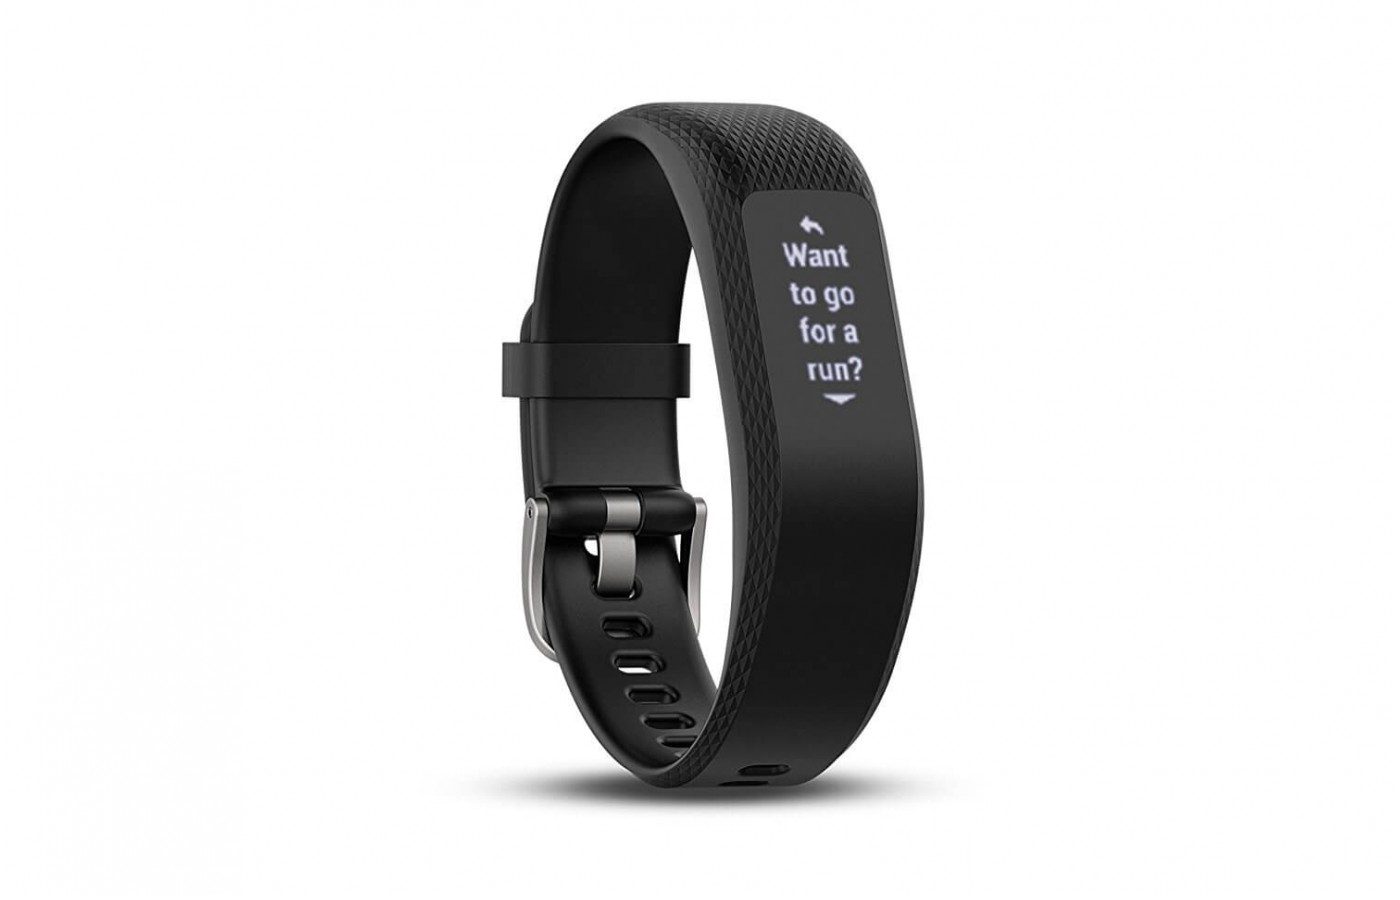 The Garmin Vivosmart 3 provides users with smartphone notifications